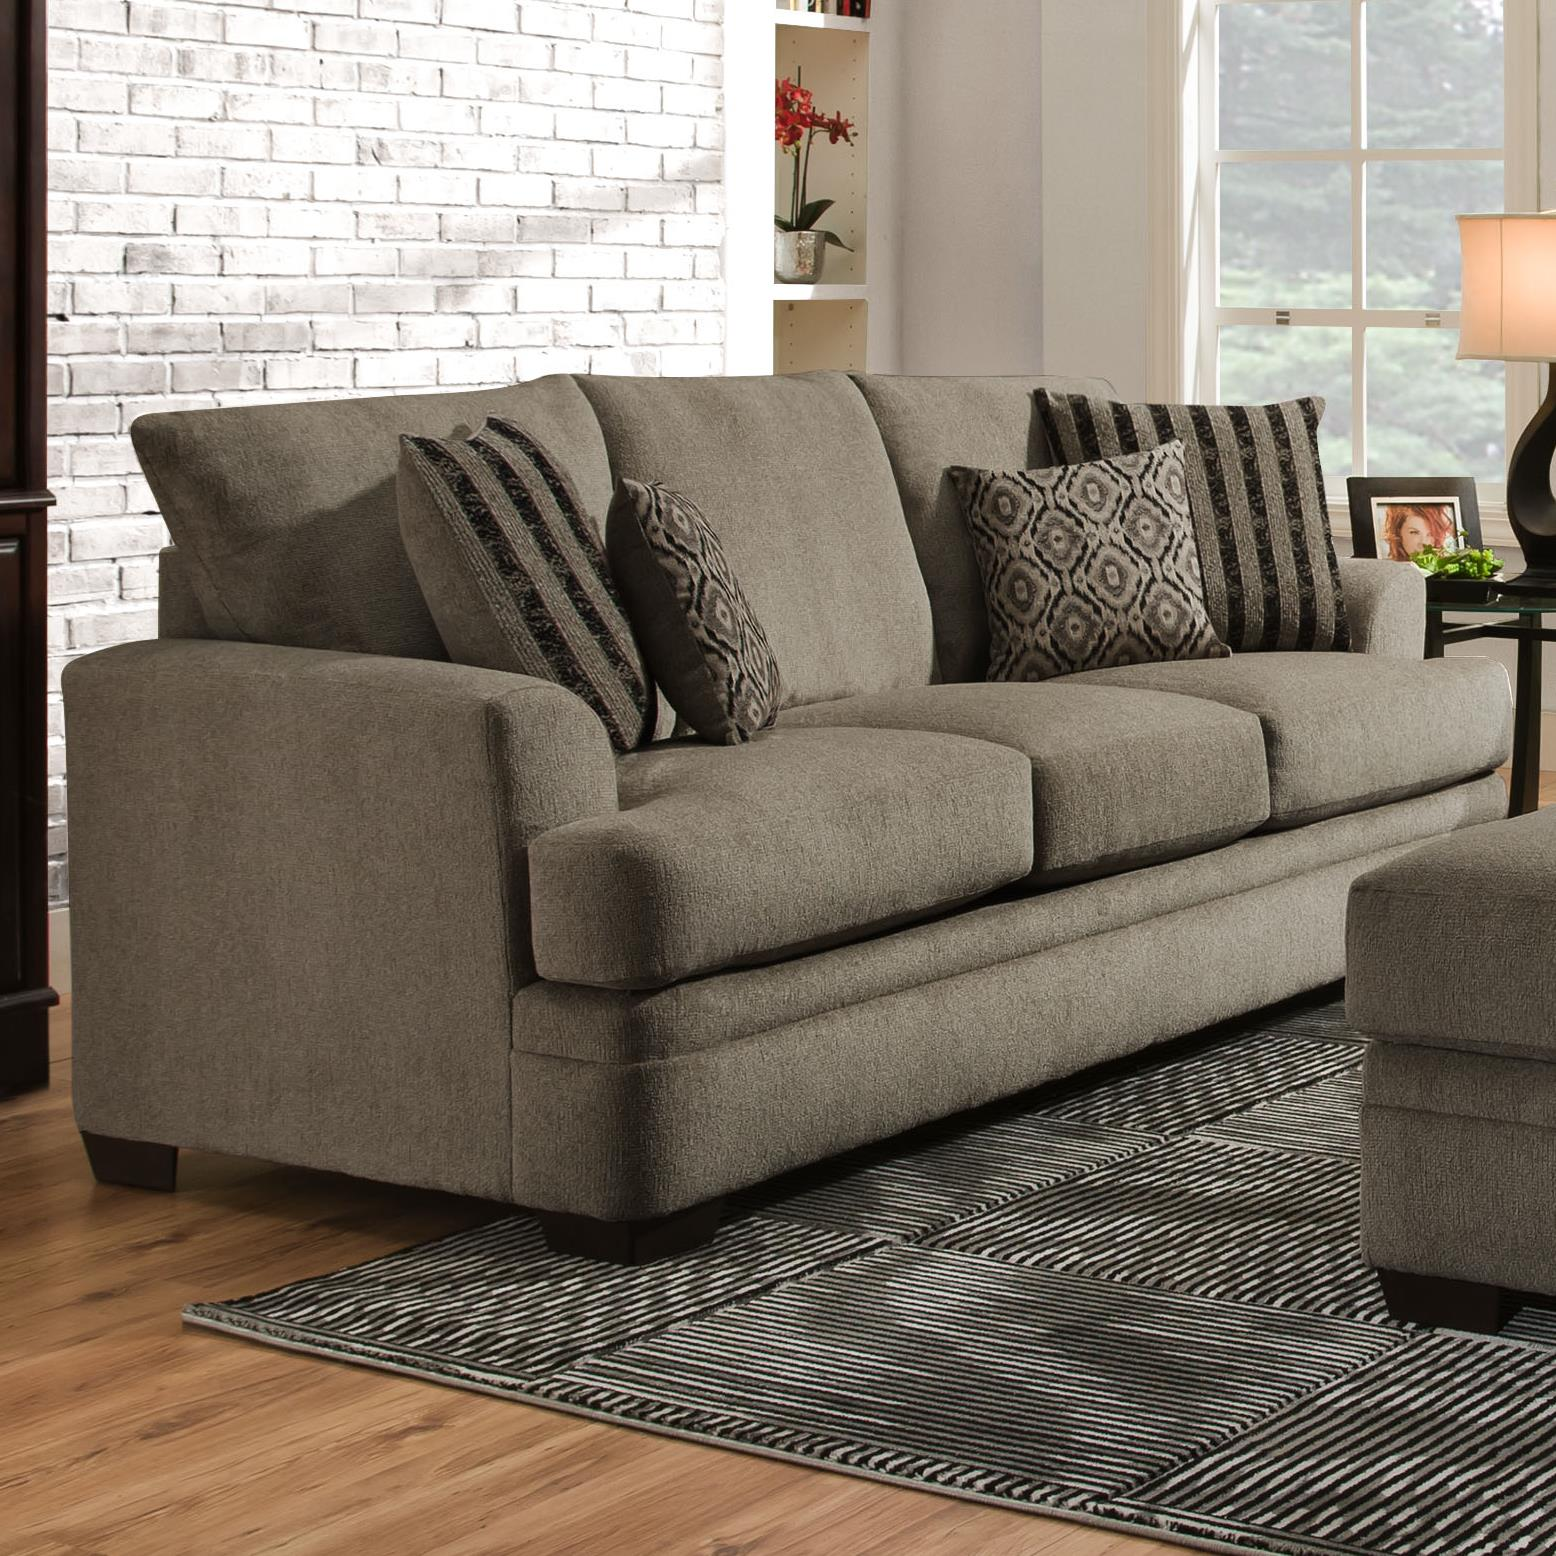 American furniture 3650 3653 1664 casual sofa with 3 seats for American home furniture couches